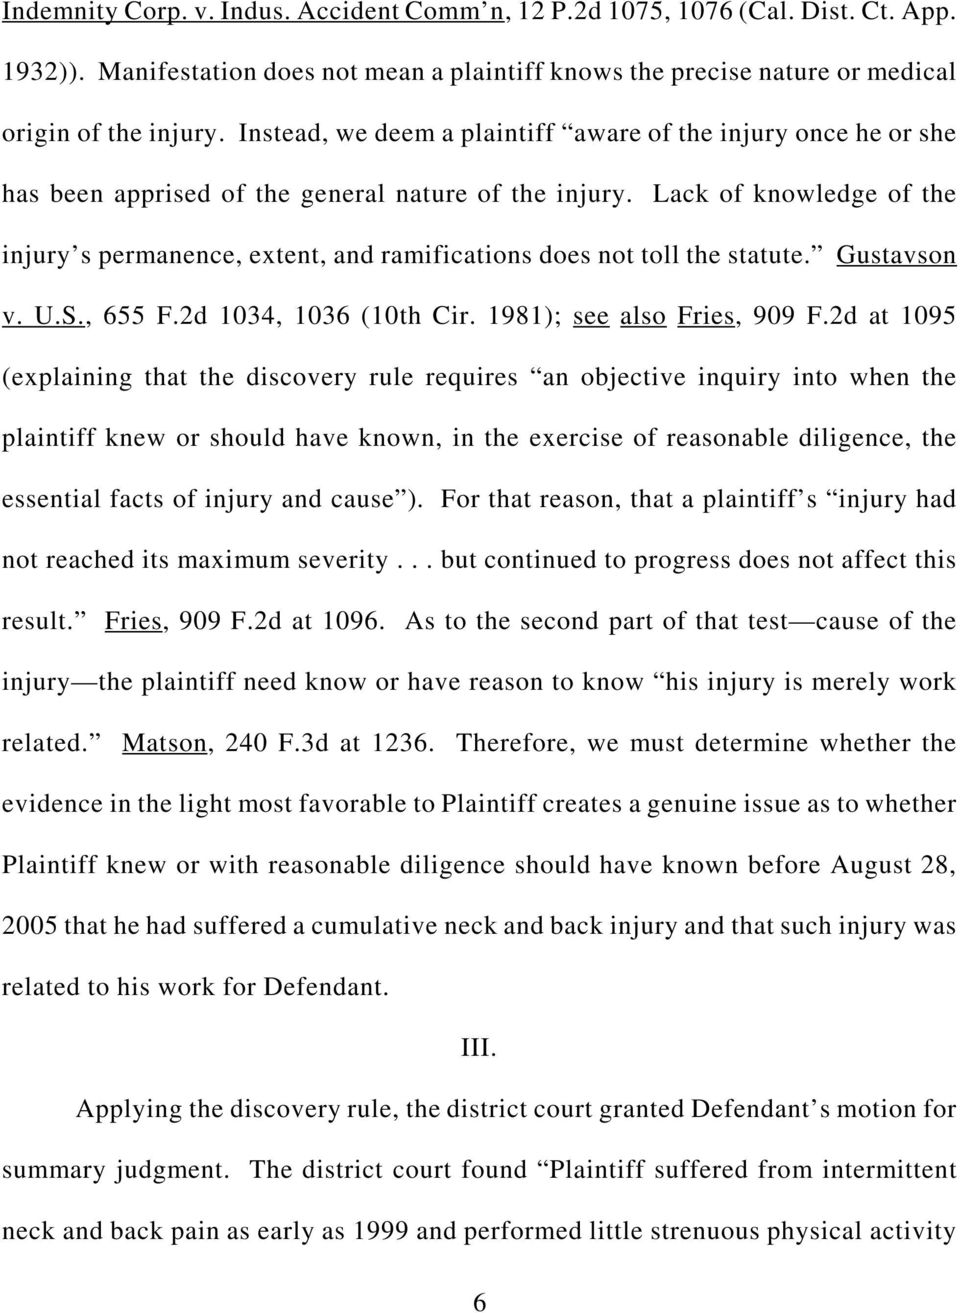 Lack of knowledge of the injury s permanence, extent, and ramifications does not toll the statute. Gustavson v. U.S., 655 F.2d 1034, 1036 (10th Cir. 1981); see also Fries, 909 F.